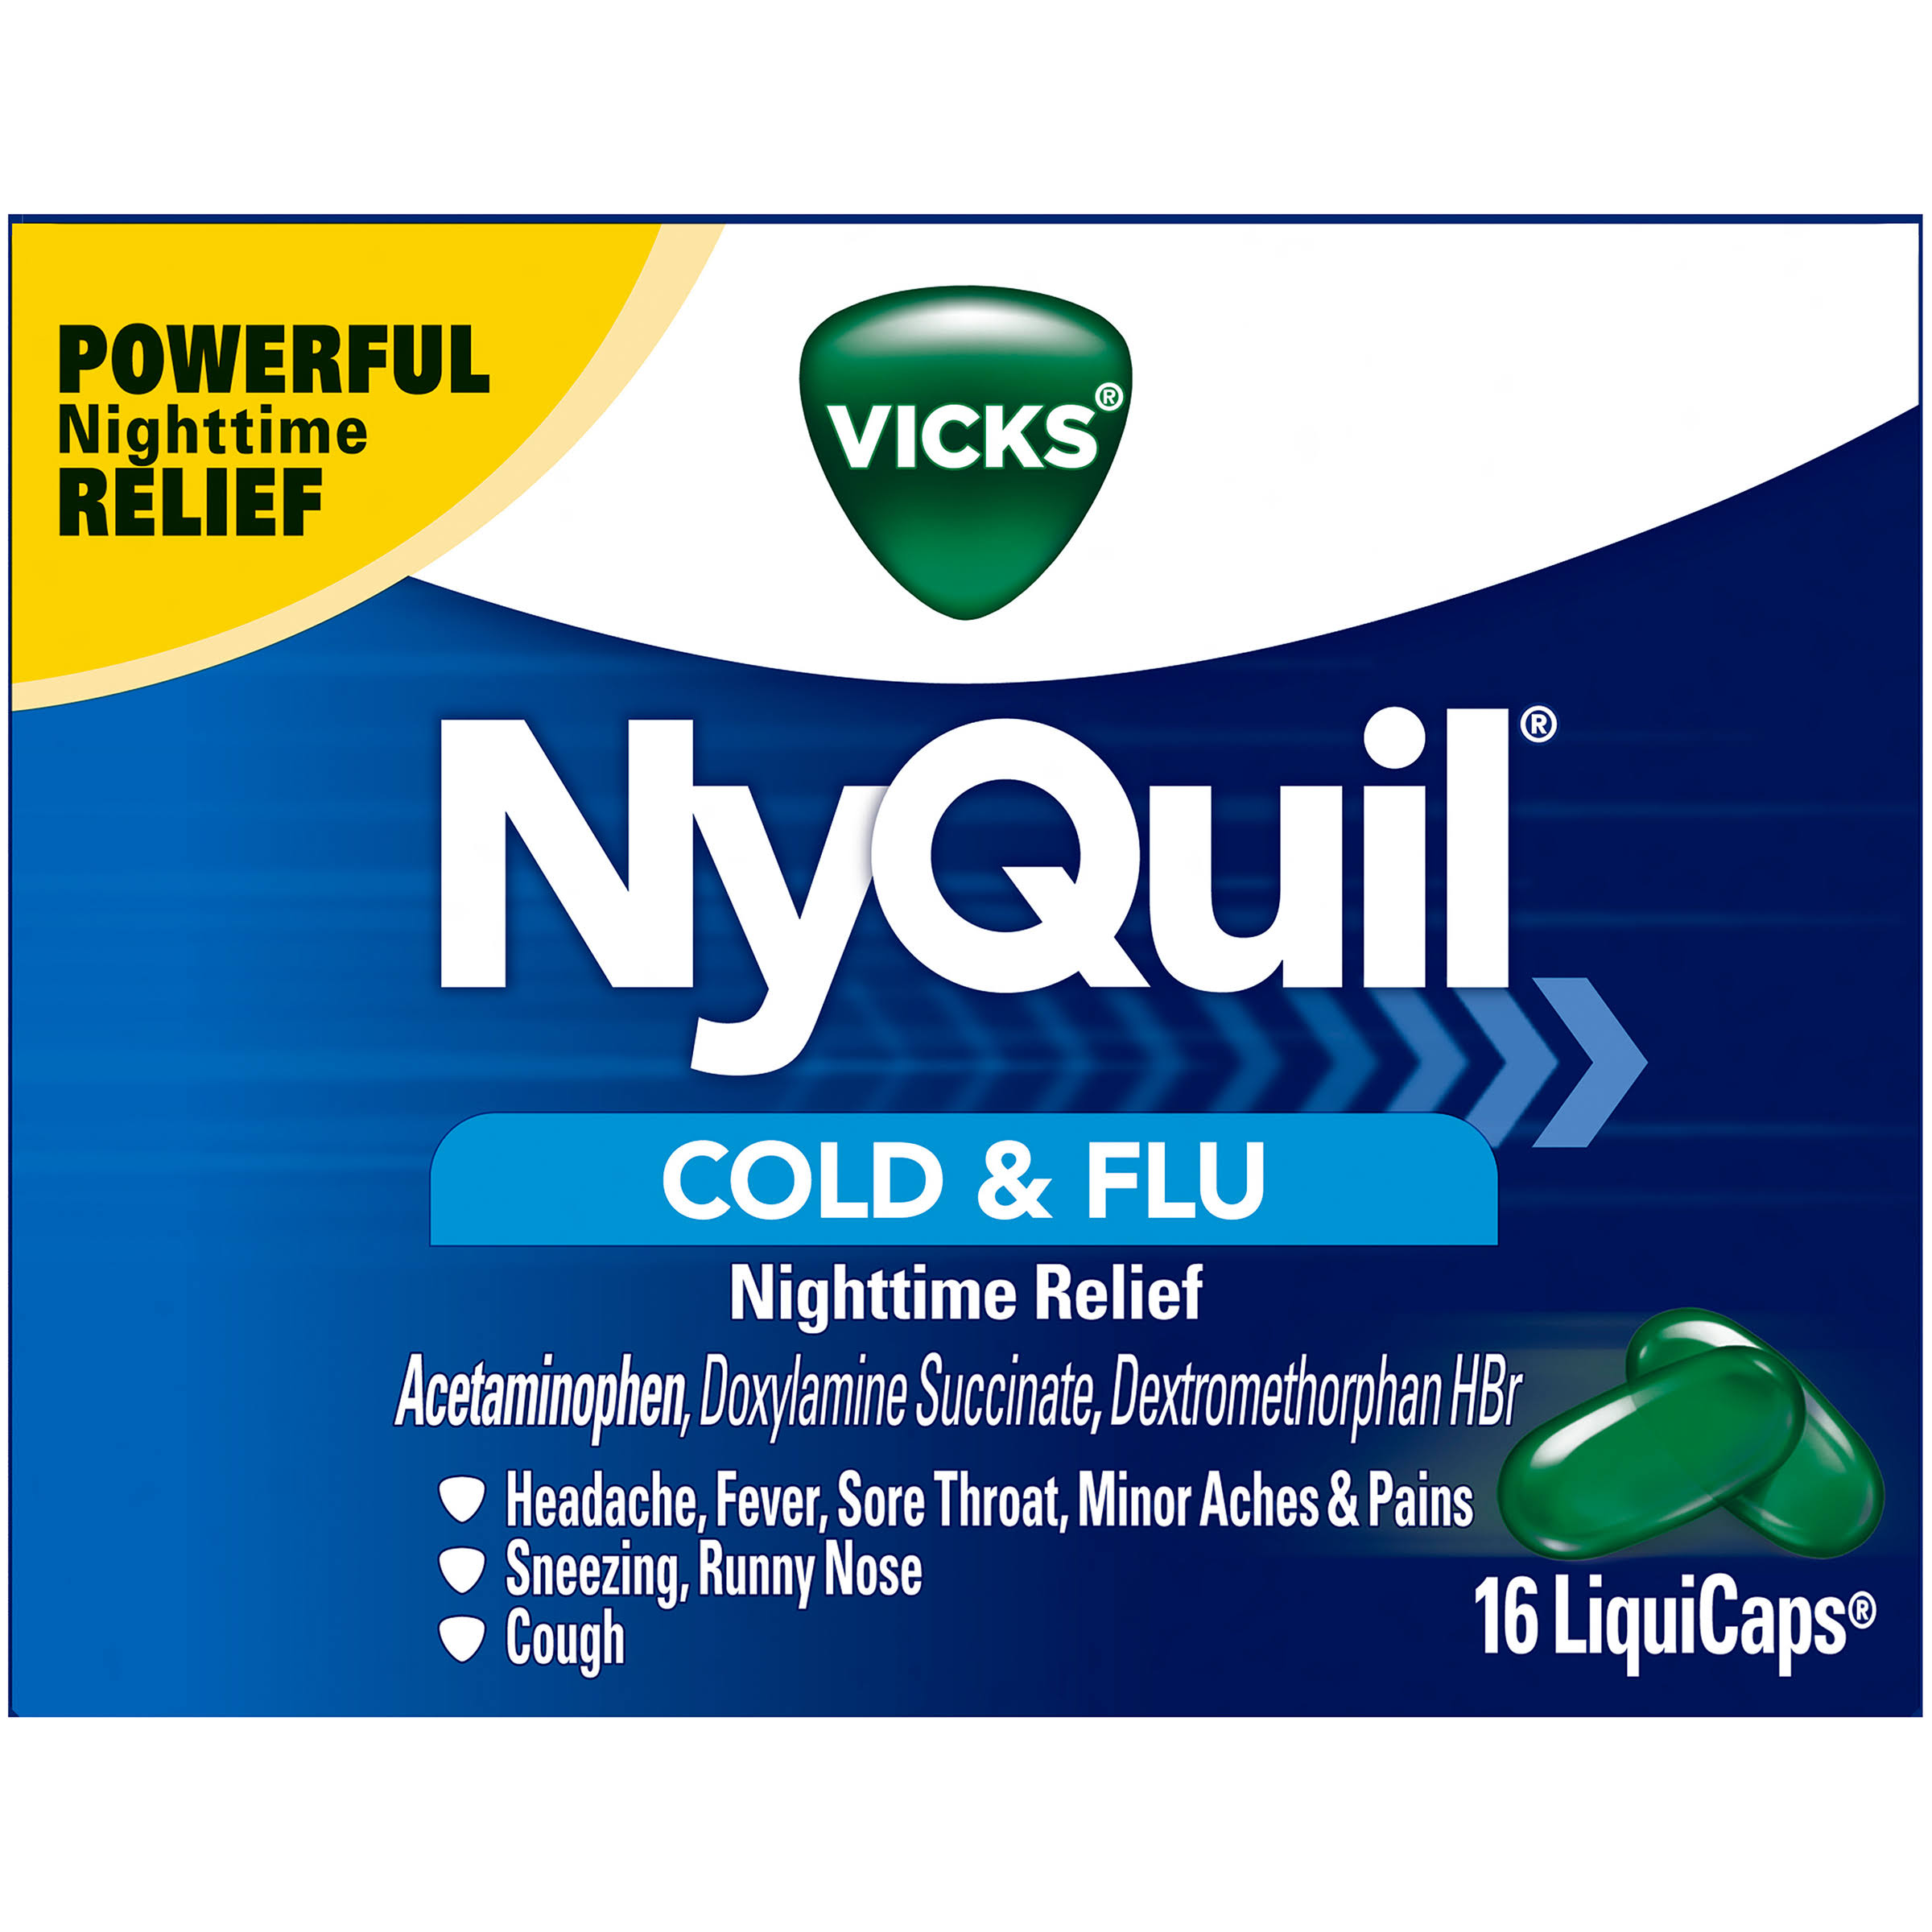 Vicks Nyquil Cold & Flu Nighttime Relief - 16 Liqiud Capsules